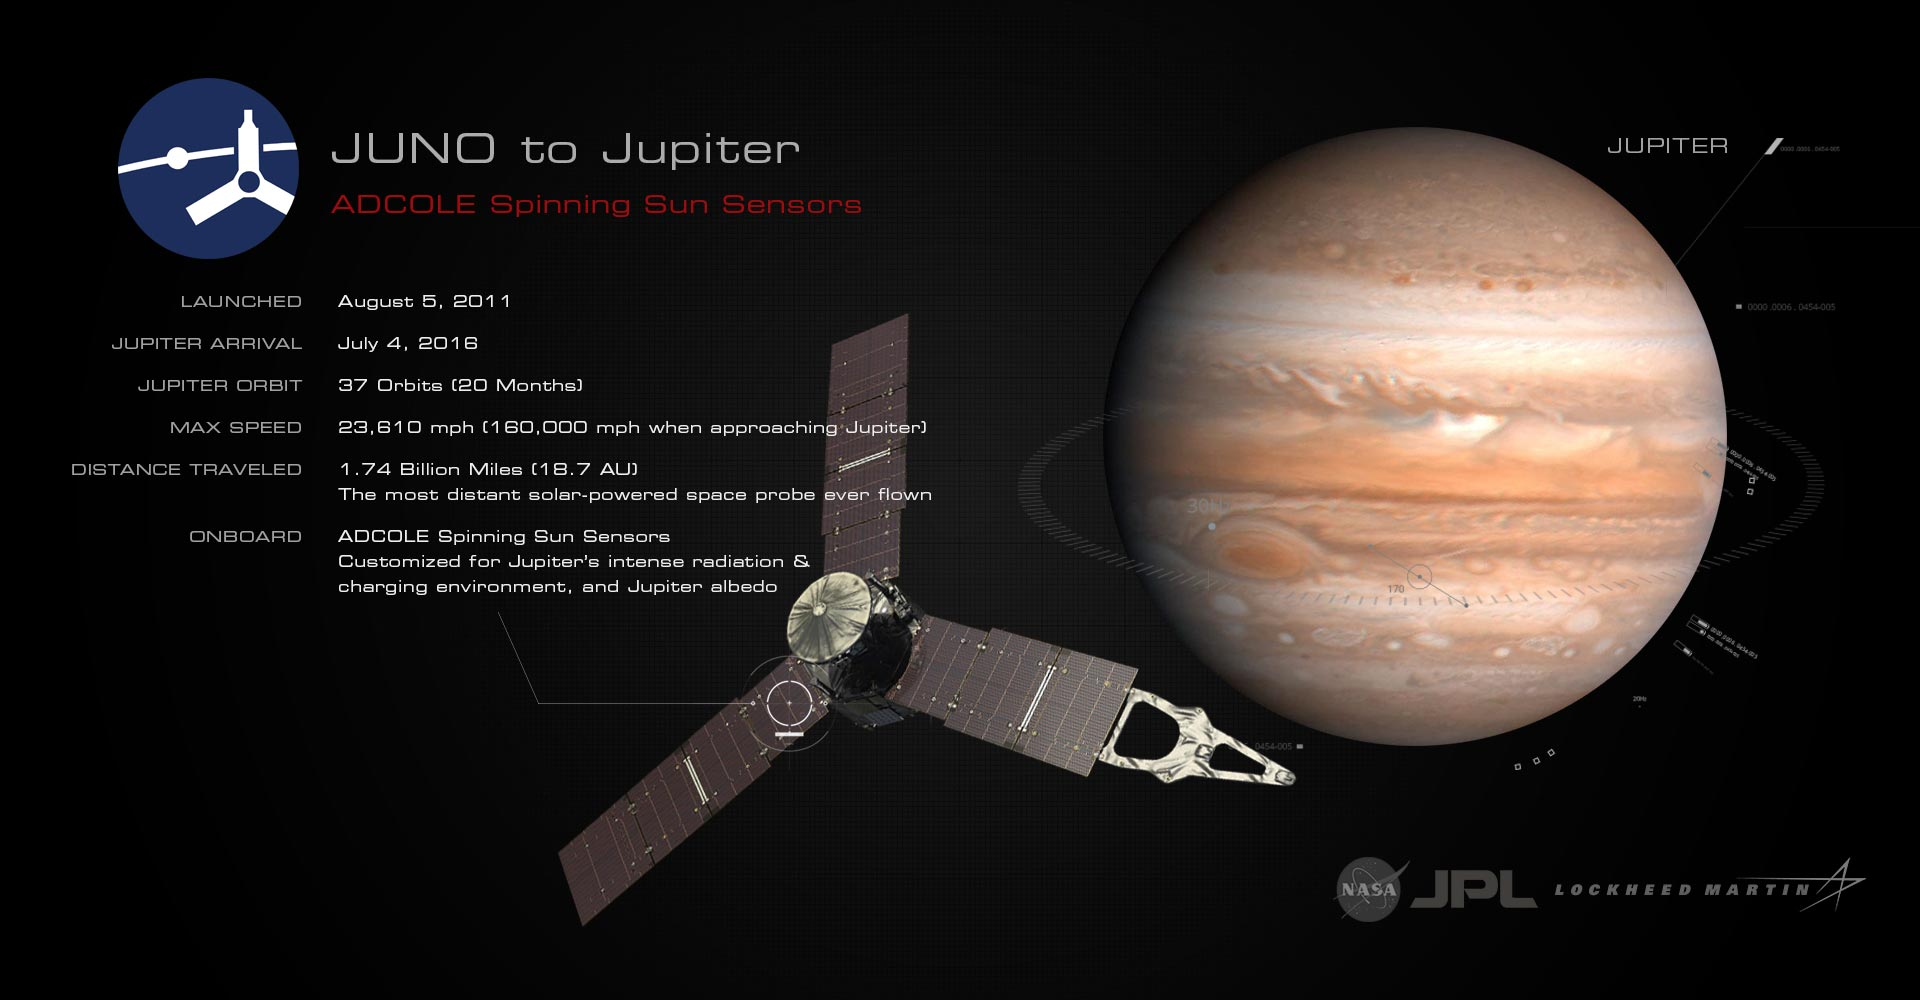 Adcole Spinning Sun Sensor aboard Juno Spacecraft, presently in Orbit about Jupiter